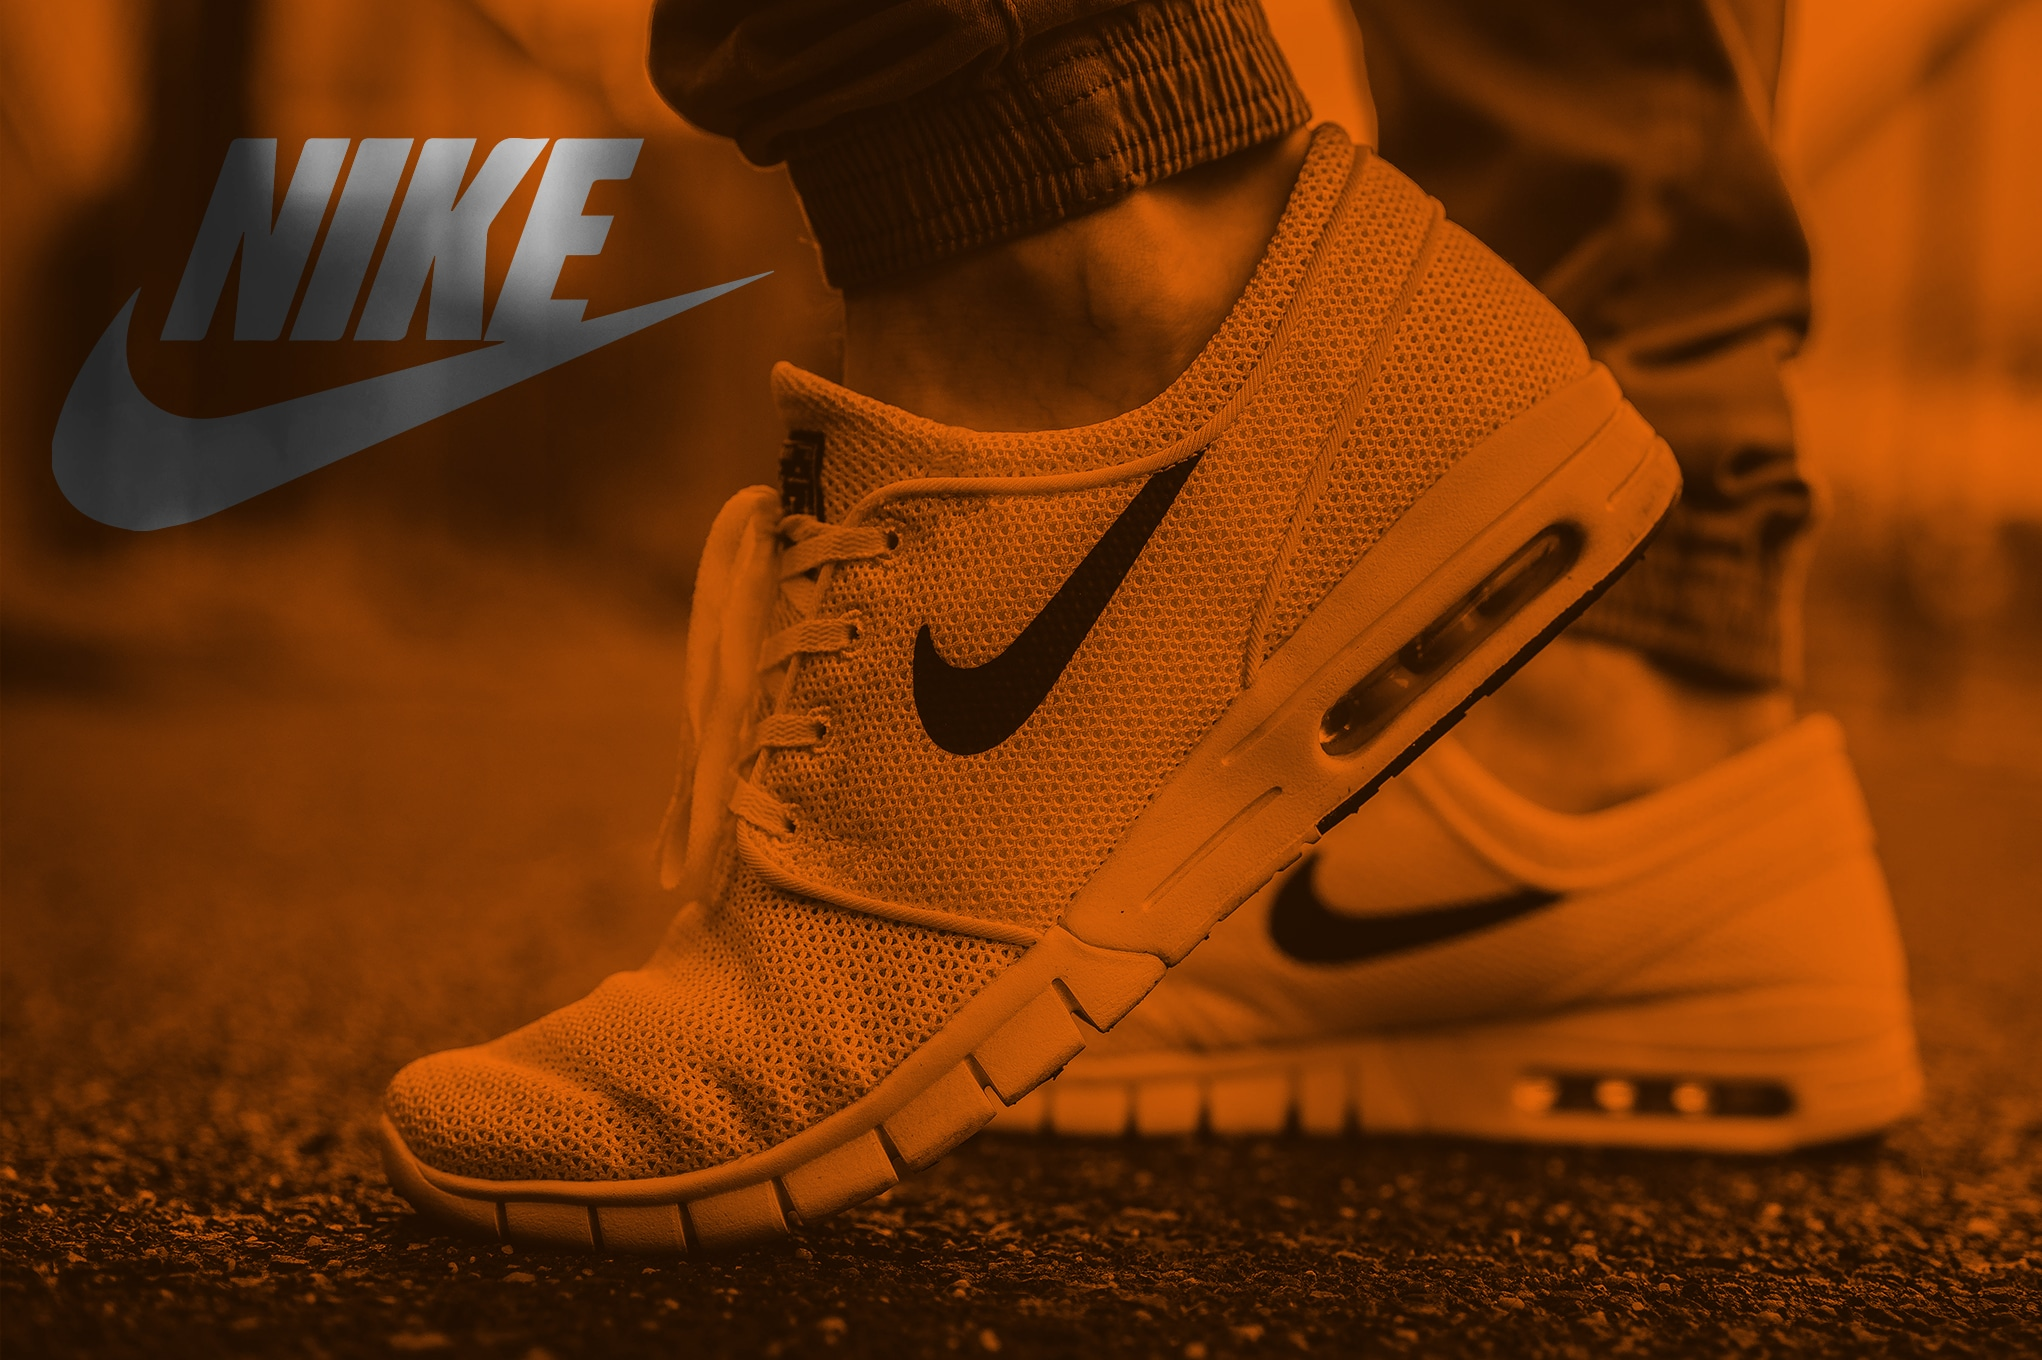 nike example Nike - more than just air nike was founded in 1964 in beaverton, oregon, by phil knight and bill bowerman - however it was not under the name nike, but rather blue ribbon sports.